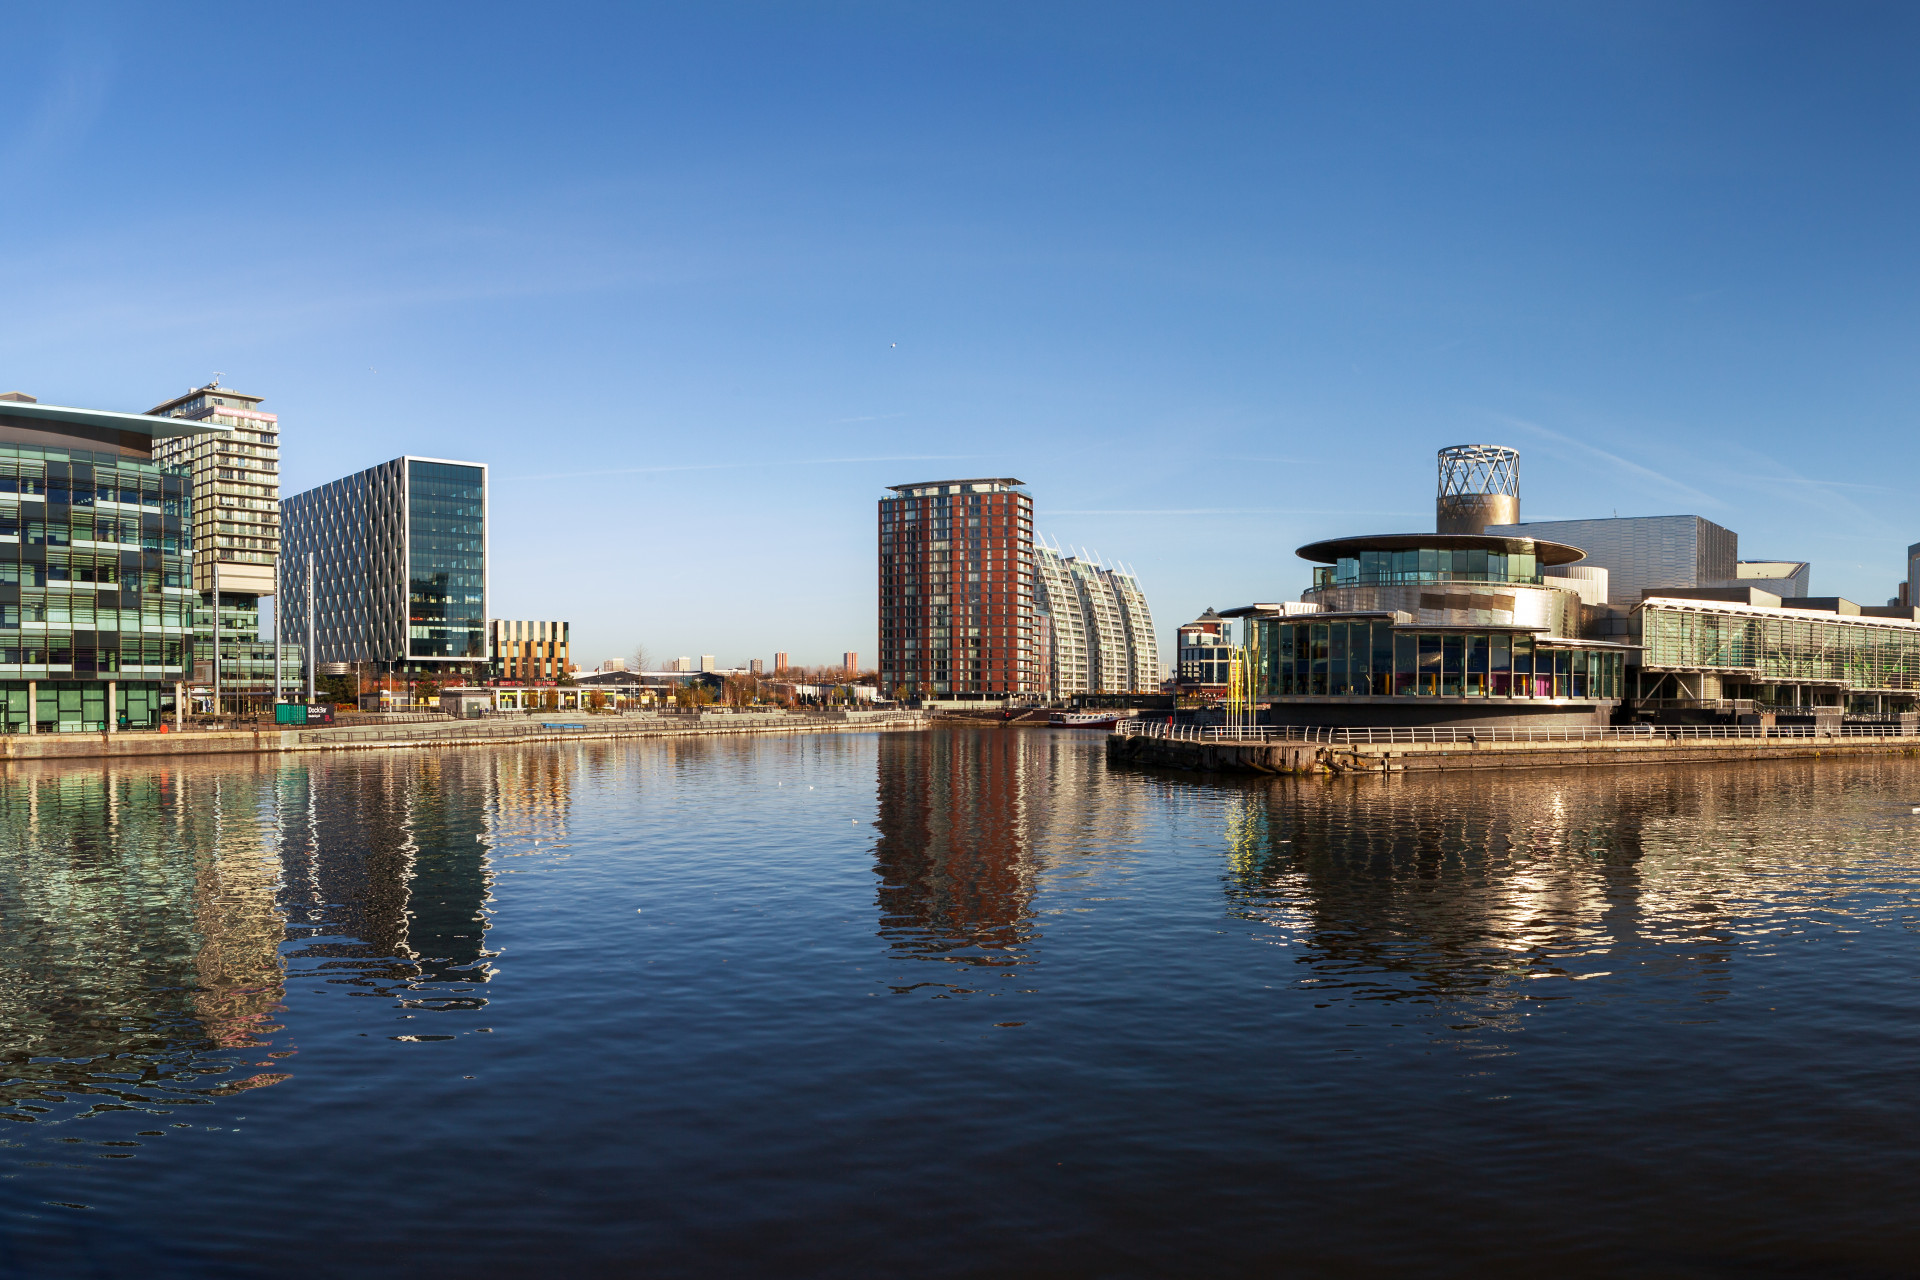 manchester_media_city_waterfront_buildings_136399211